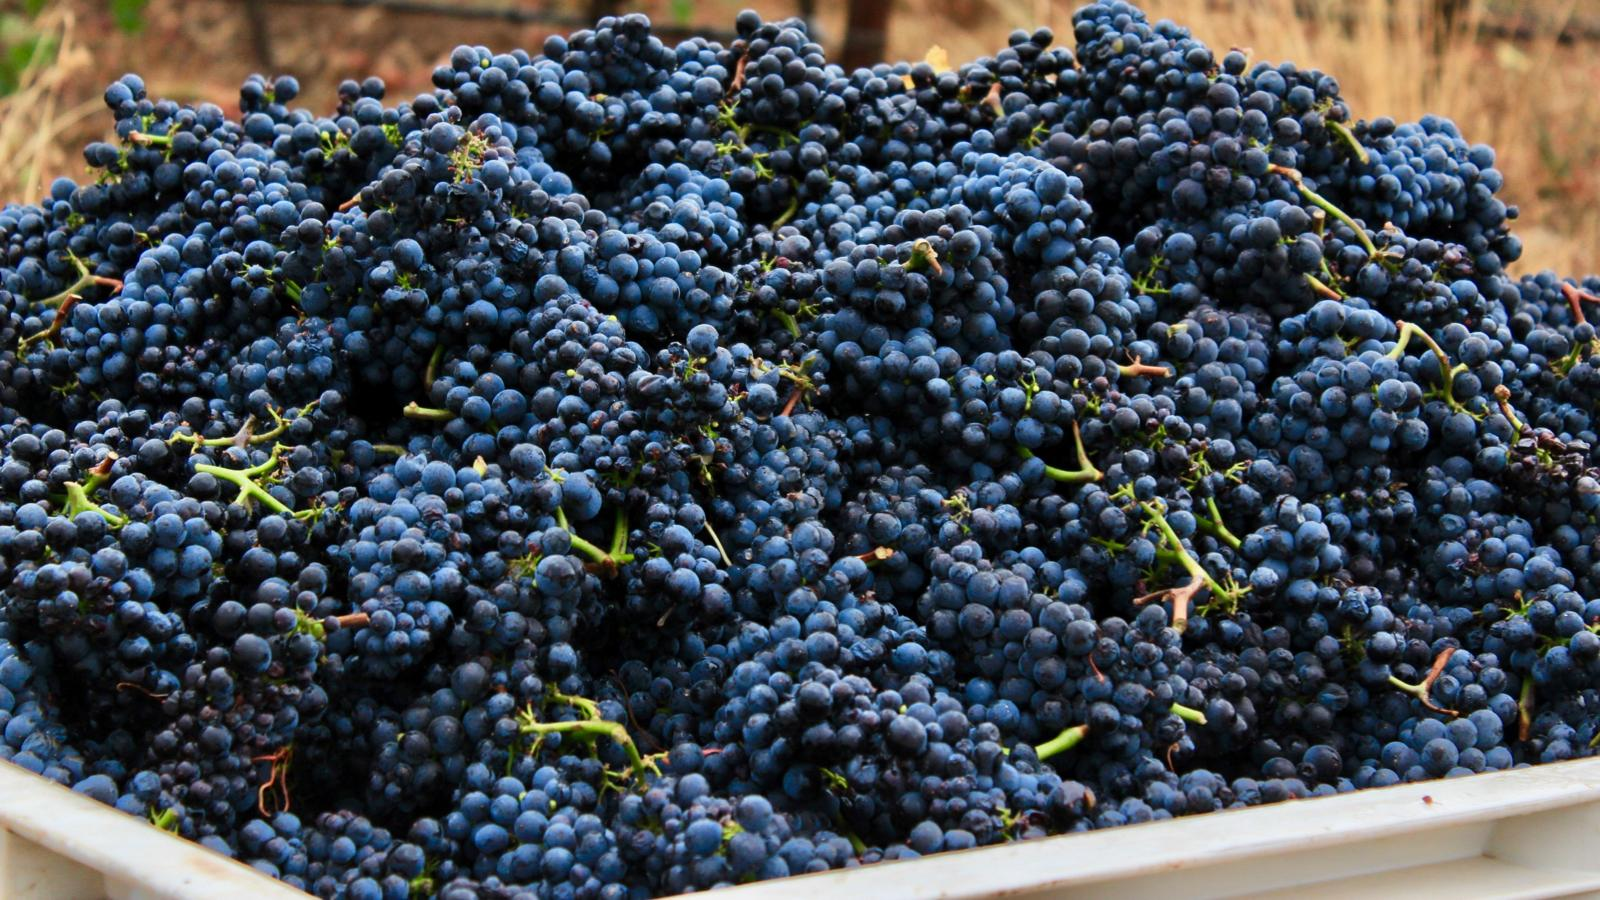 These grapes were grown, picked and vinified within Oregon's Willamette Valley.